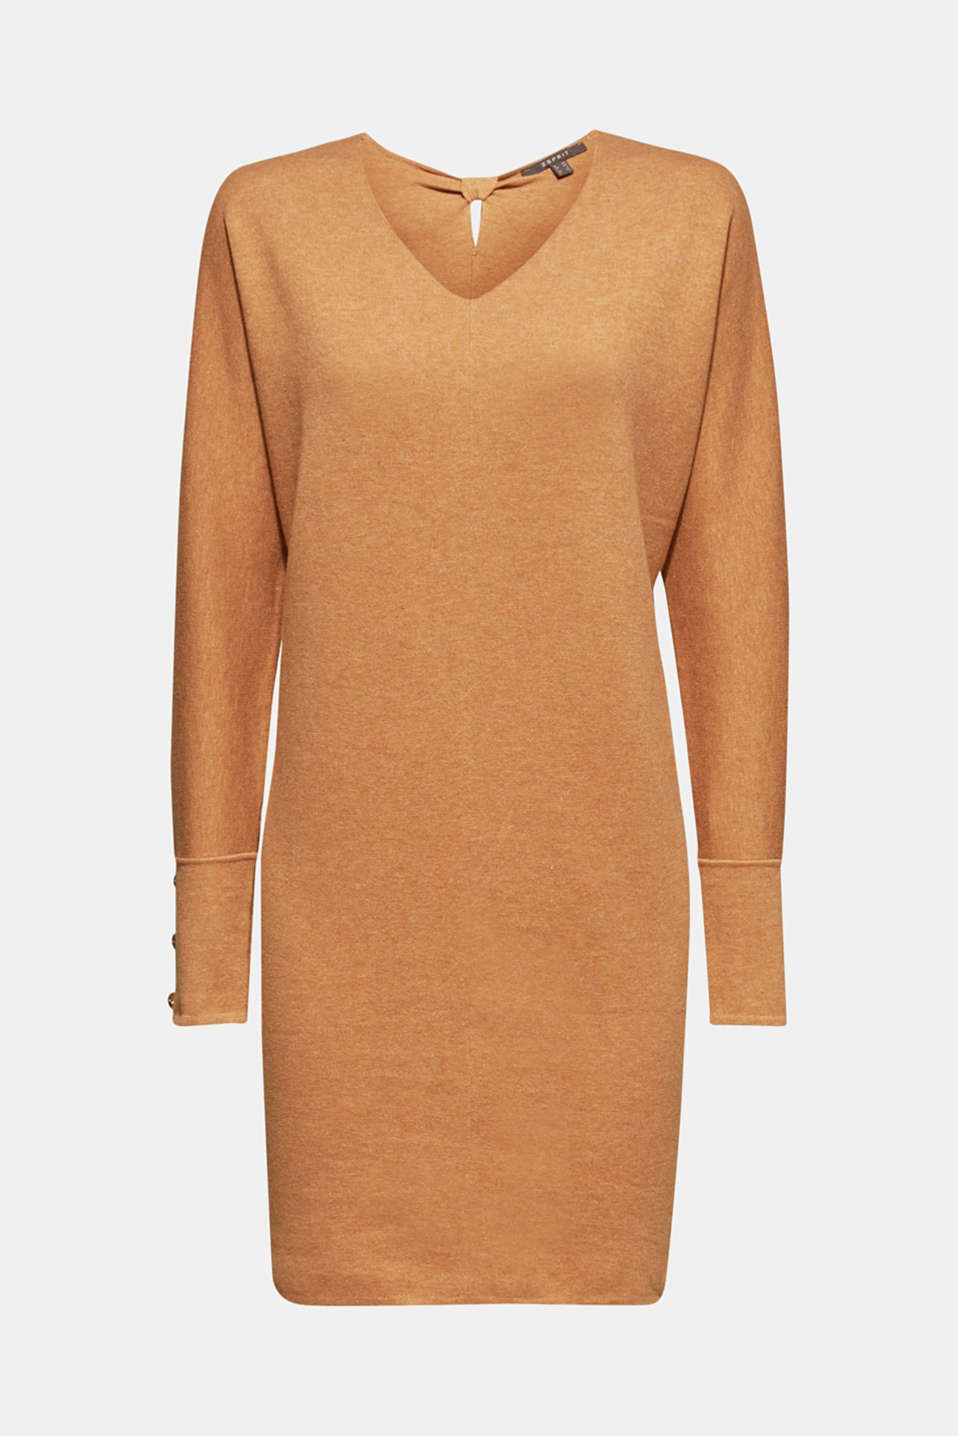 Knit dress with a bow, stretch cotton, CARAMEL 5, detail image number 6